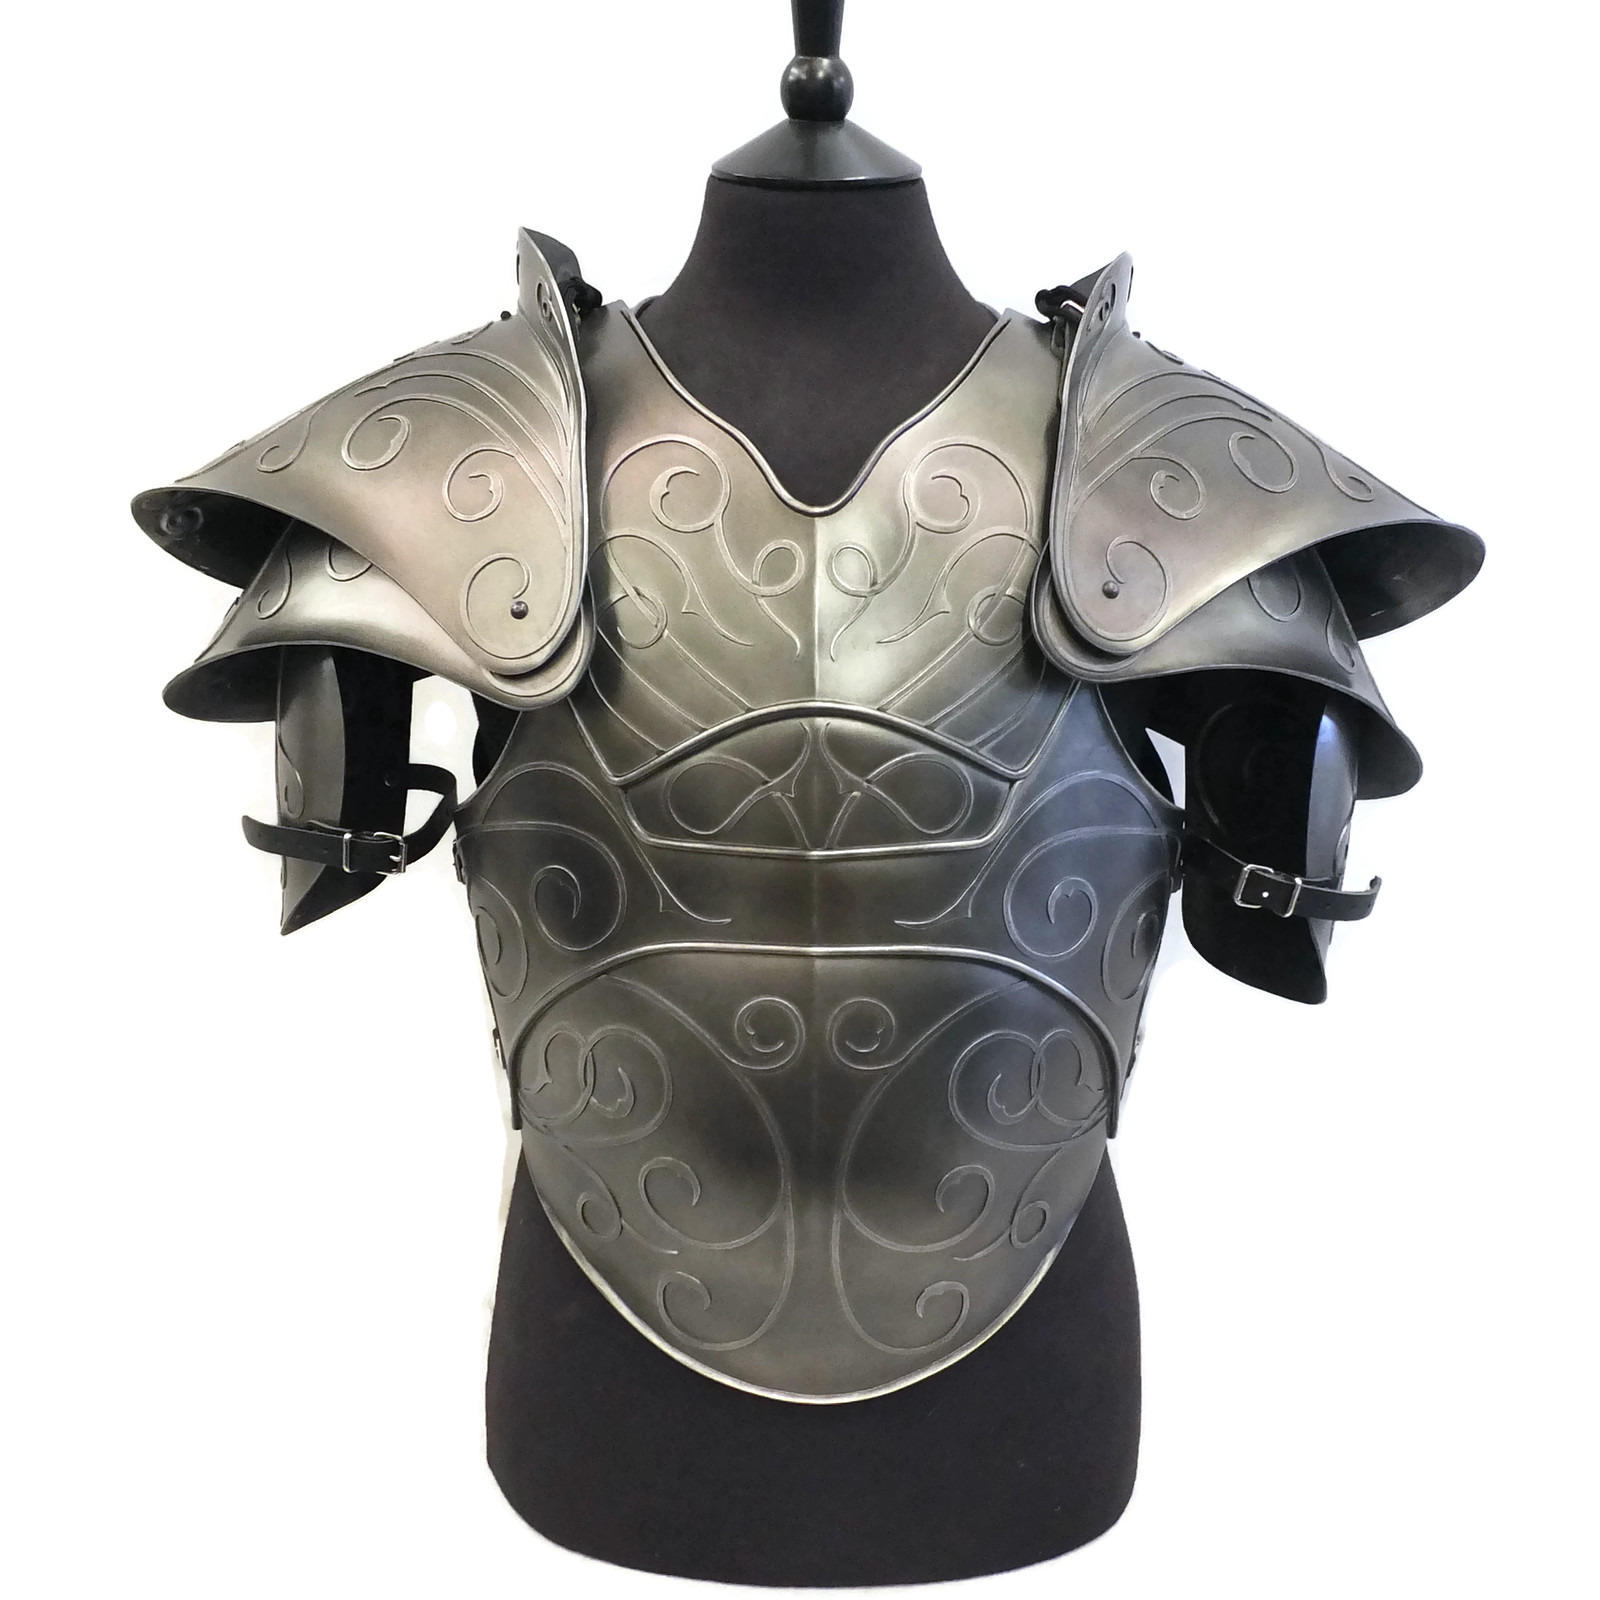 Citadel fantasy larp armour shoulders